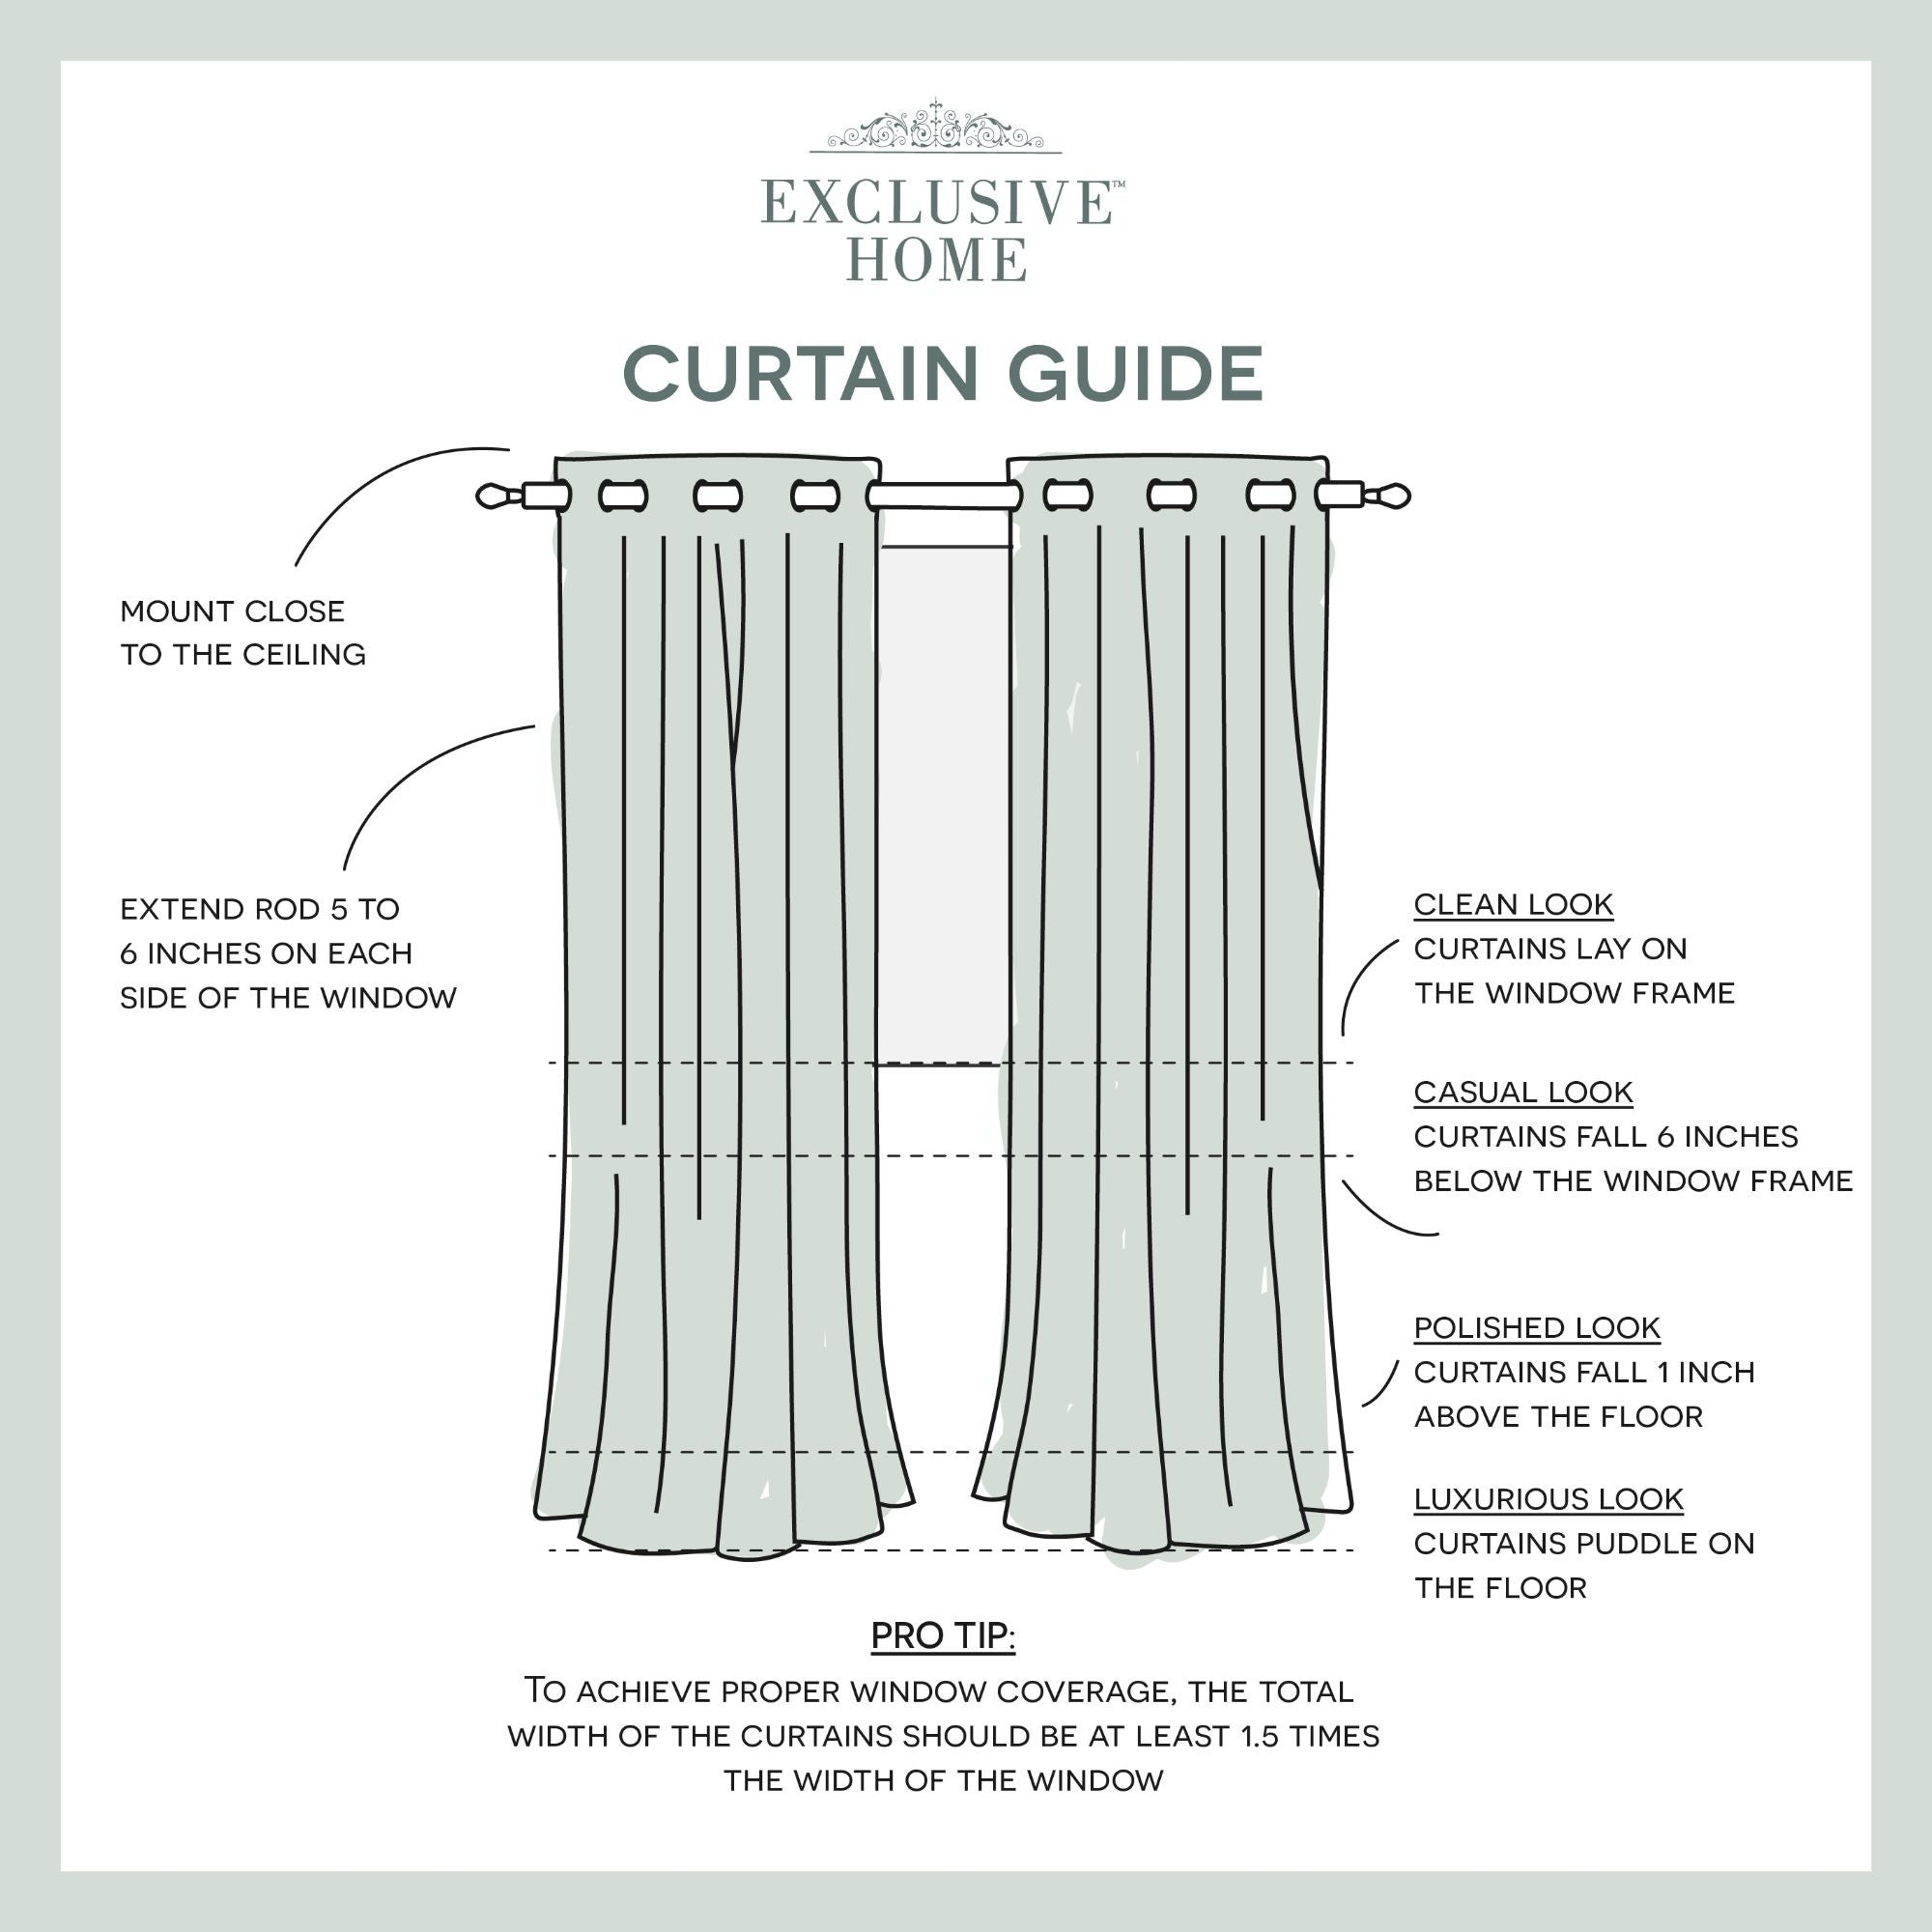 Ati Home Twig Insulated Blackout Curtain Panel Pair With Grommet Top Intended For Twig Insulated Blackout Curtain Panel Pairs With Grommet Top (View 6 of 30)